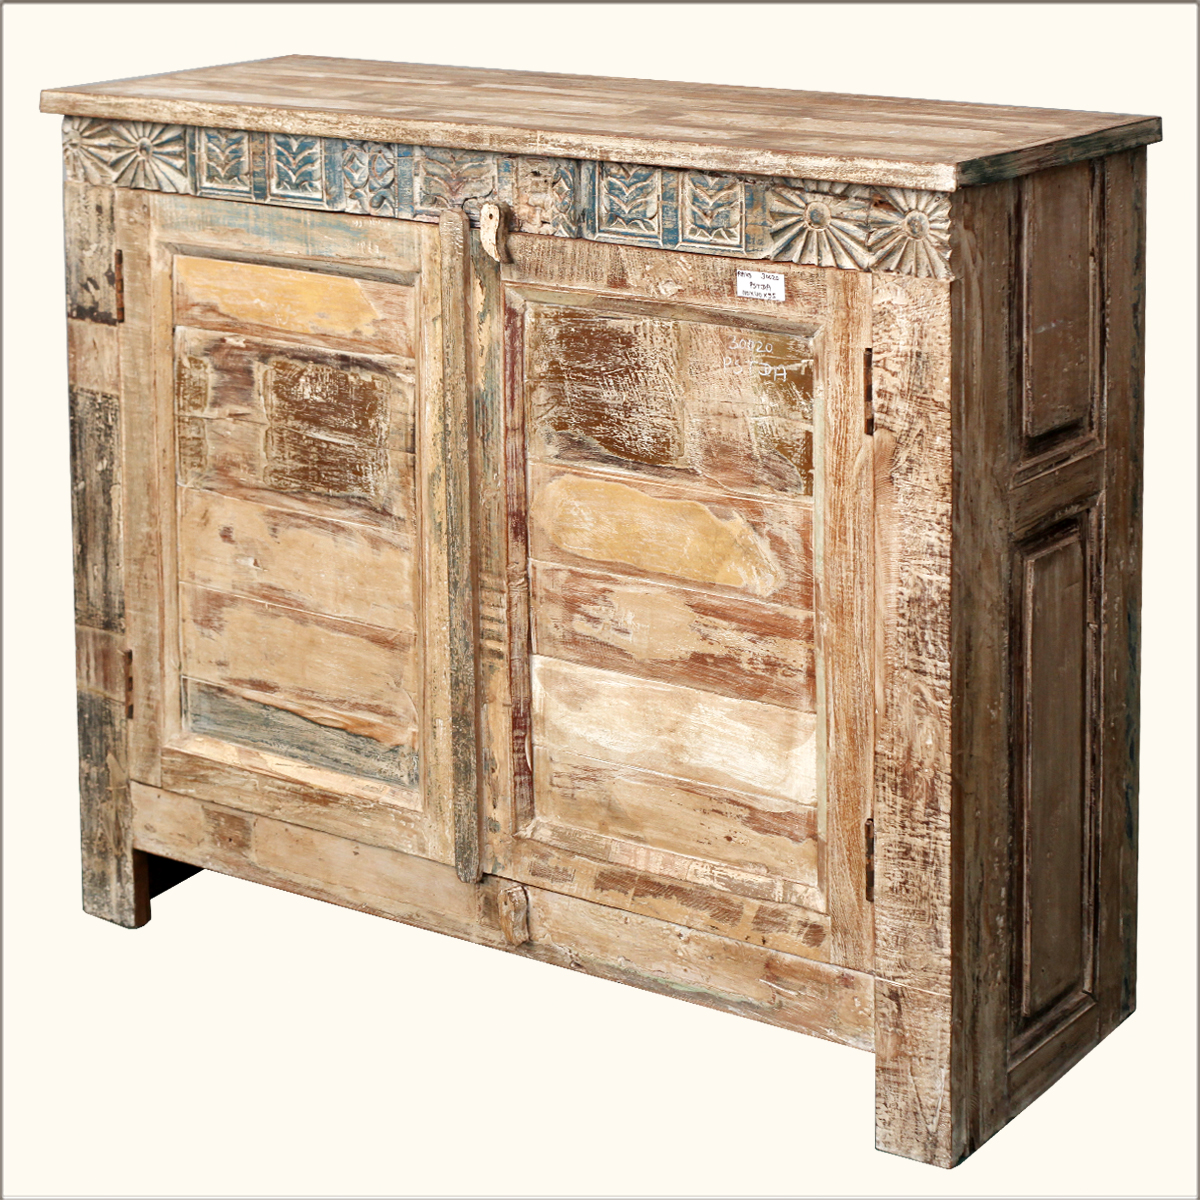 All Wood Storage Cabinet ~ Rustic reclaimed storage cabinet wood distressed sideboard